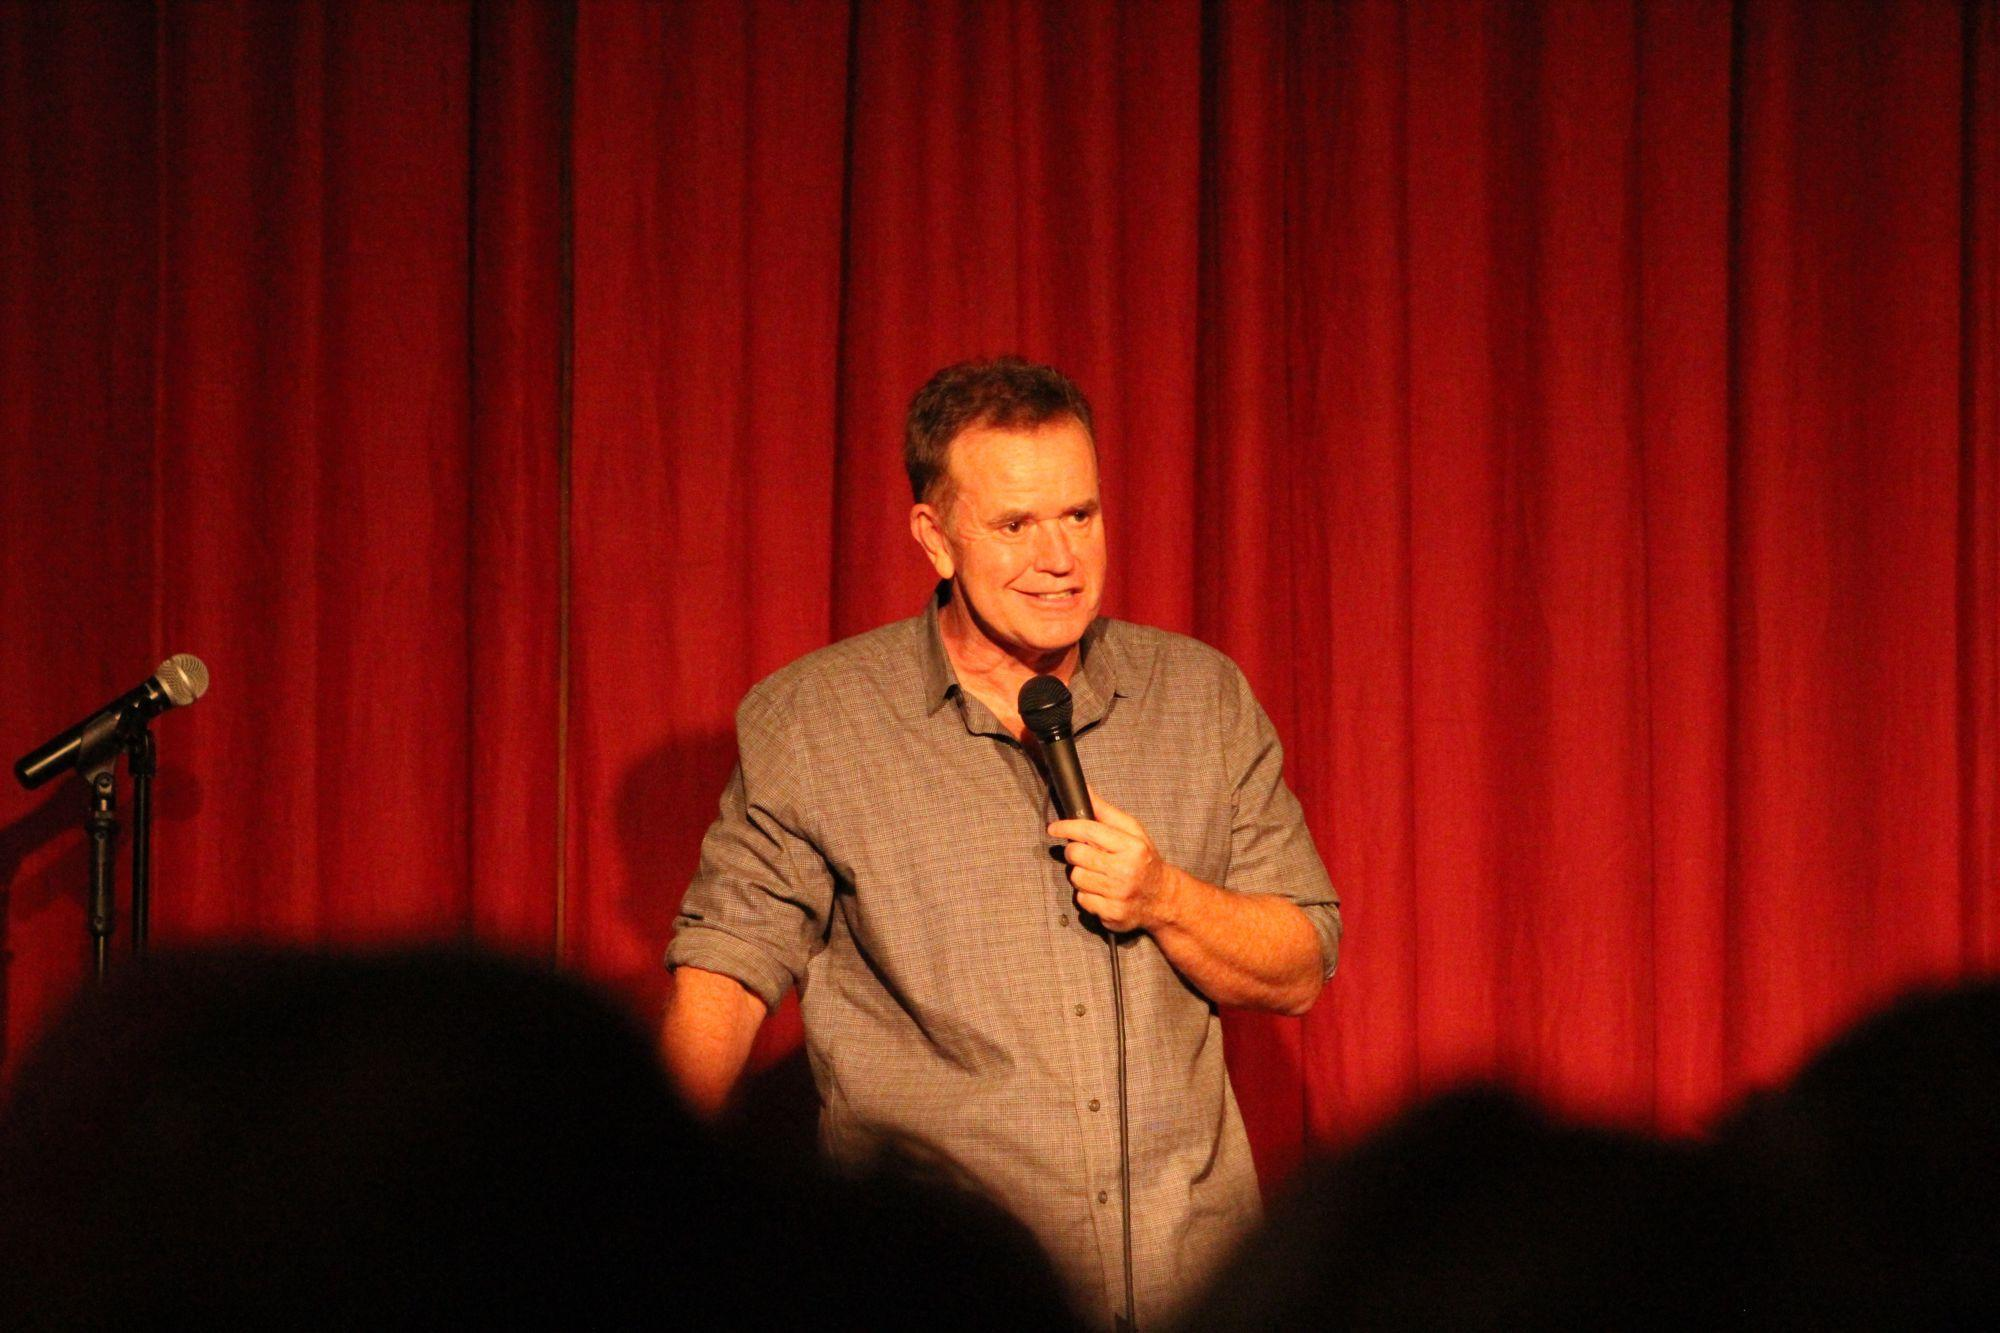 Marin Comedy Show: Relieving stress through bountiful laughter